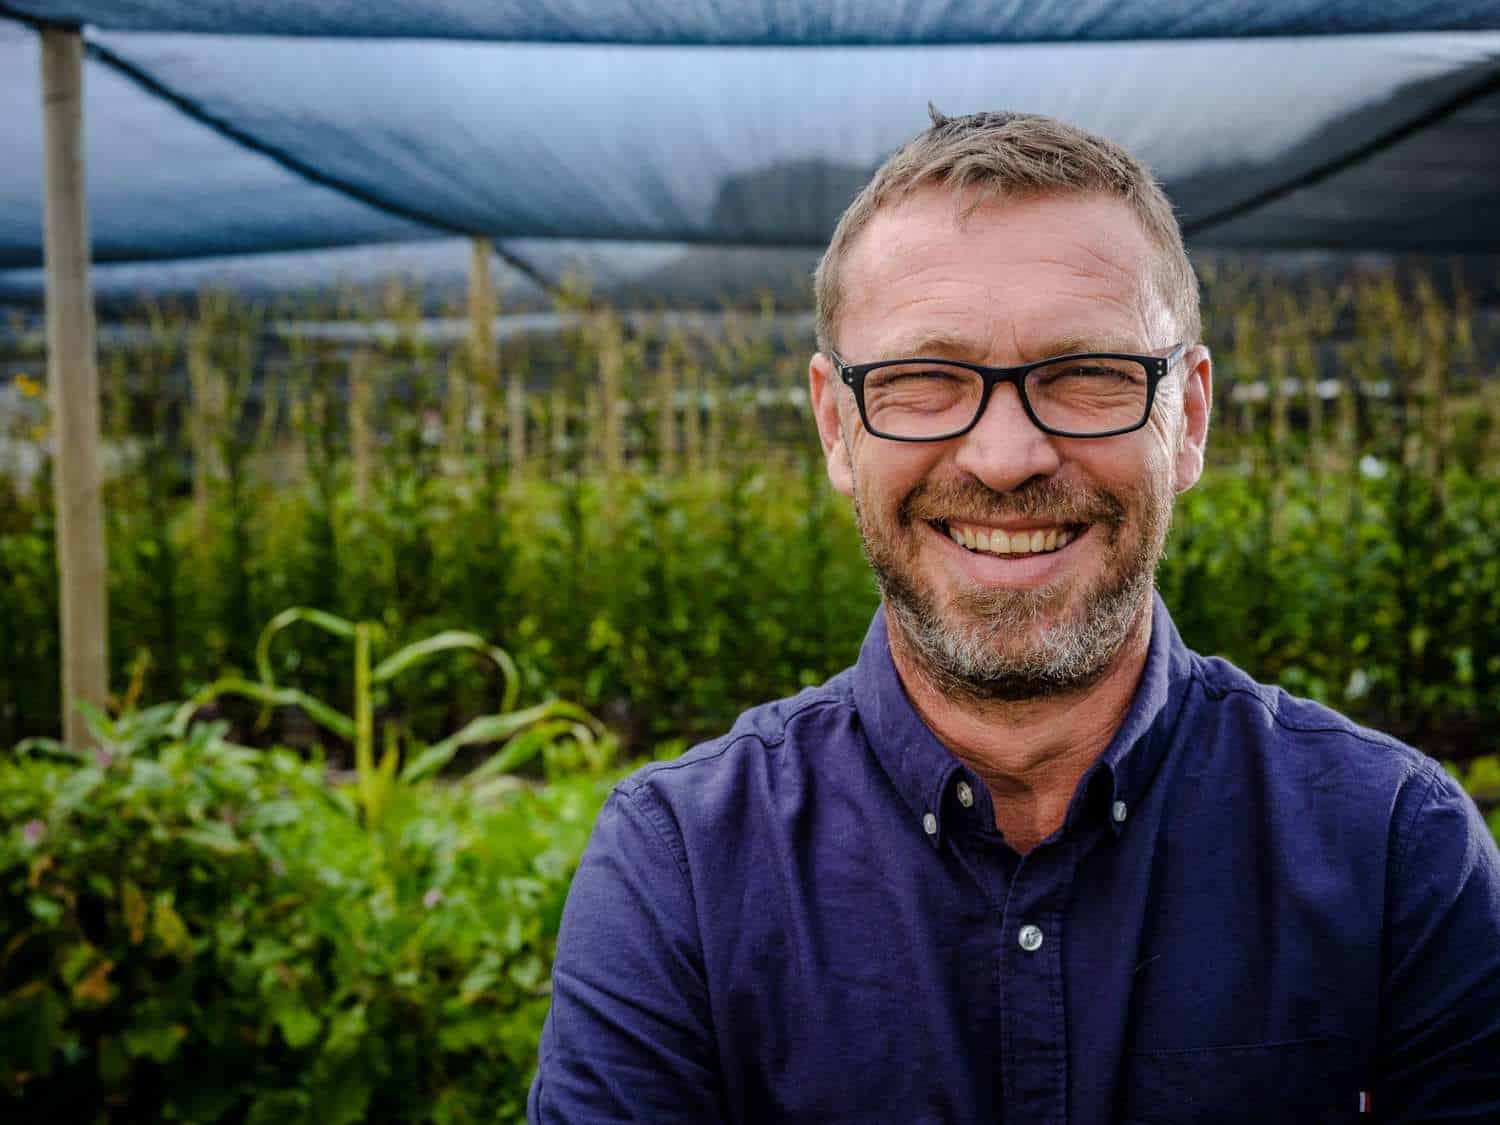 PODCAST: Mzansi's braai master, Justin Bonello is working to break the disconnect between food and where it comes from, creating jobs and tackling food security at the same time.